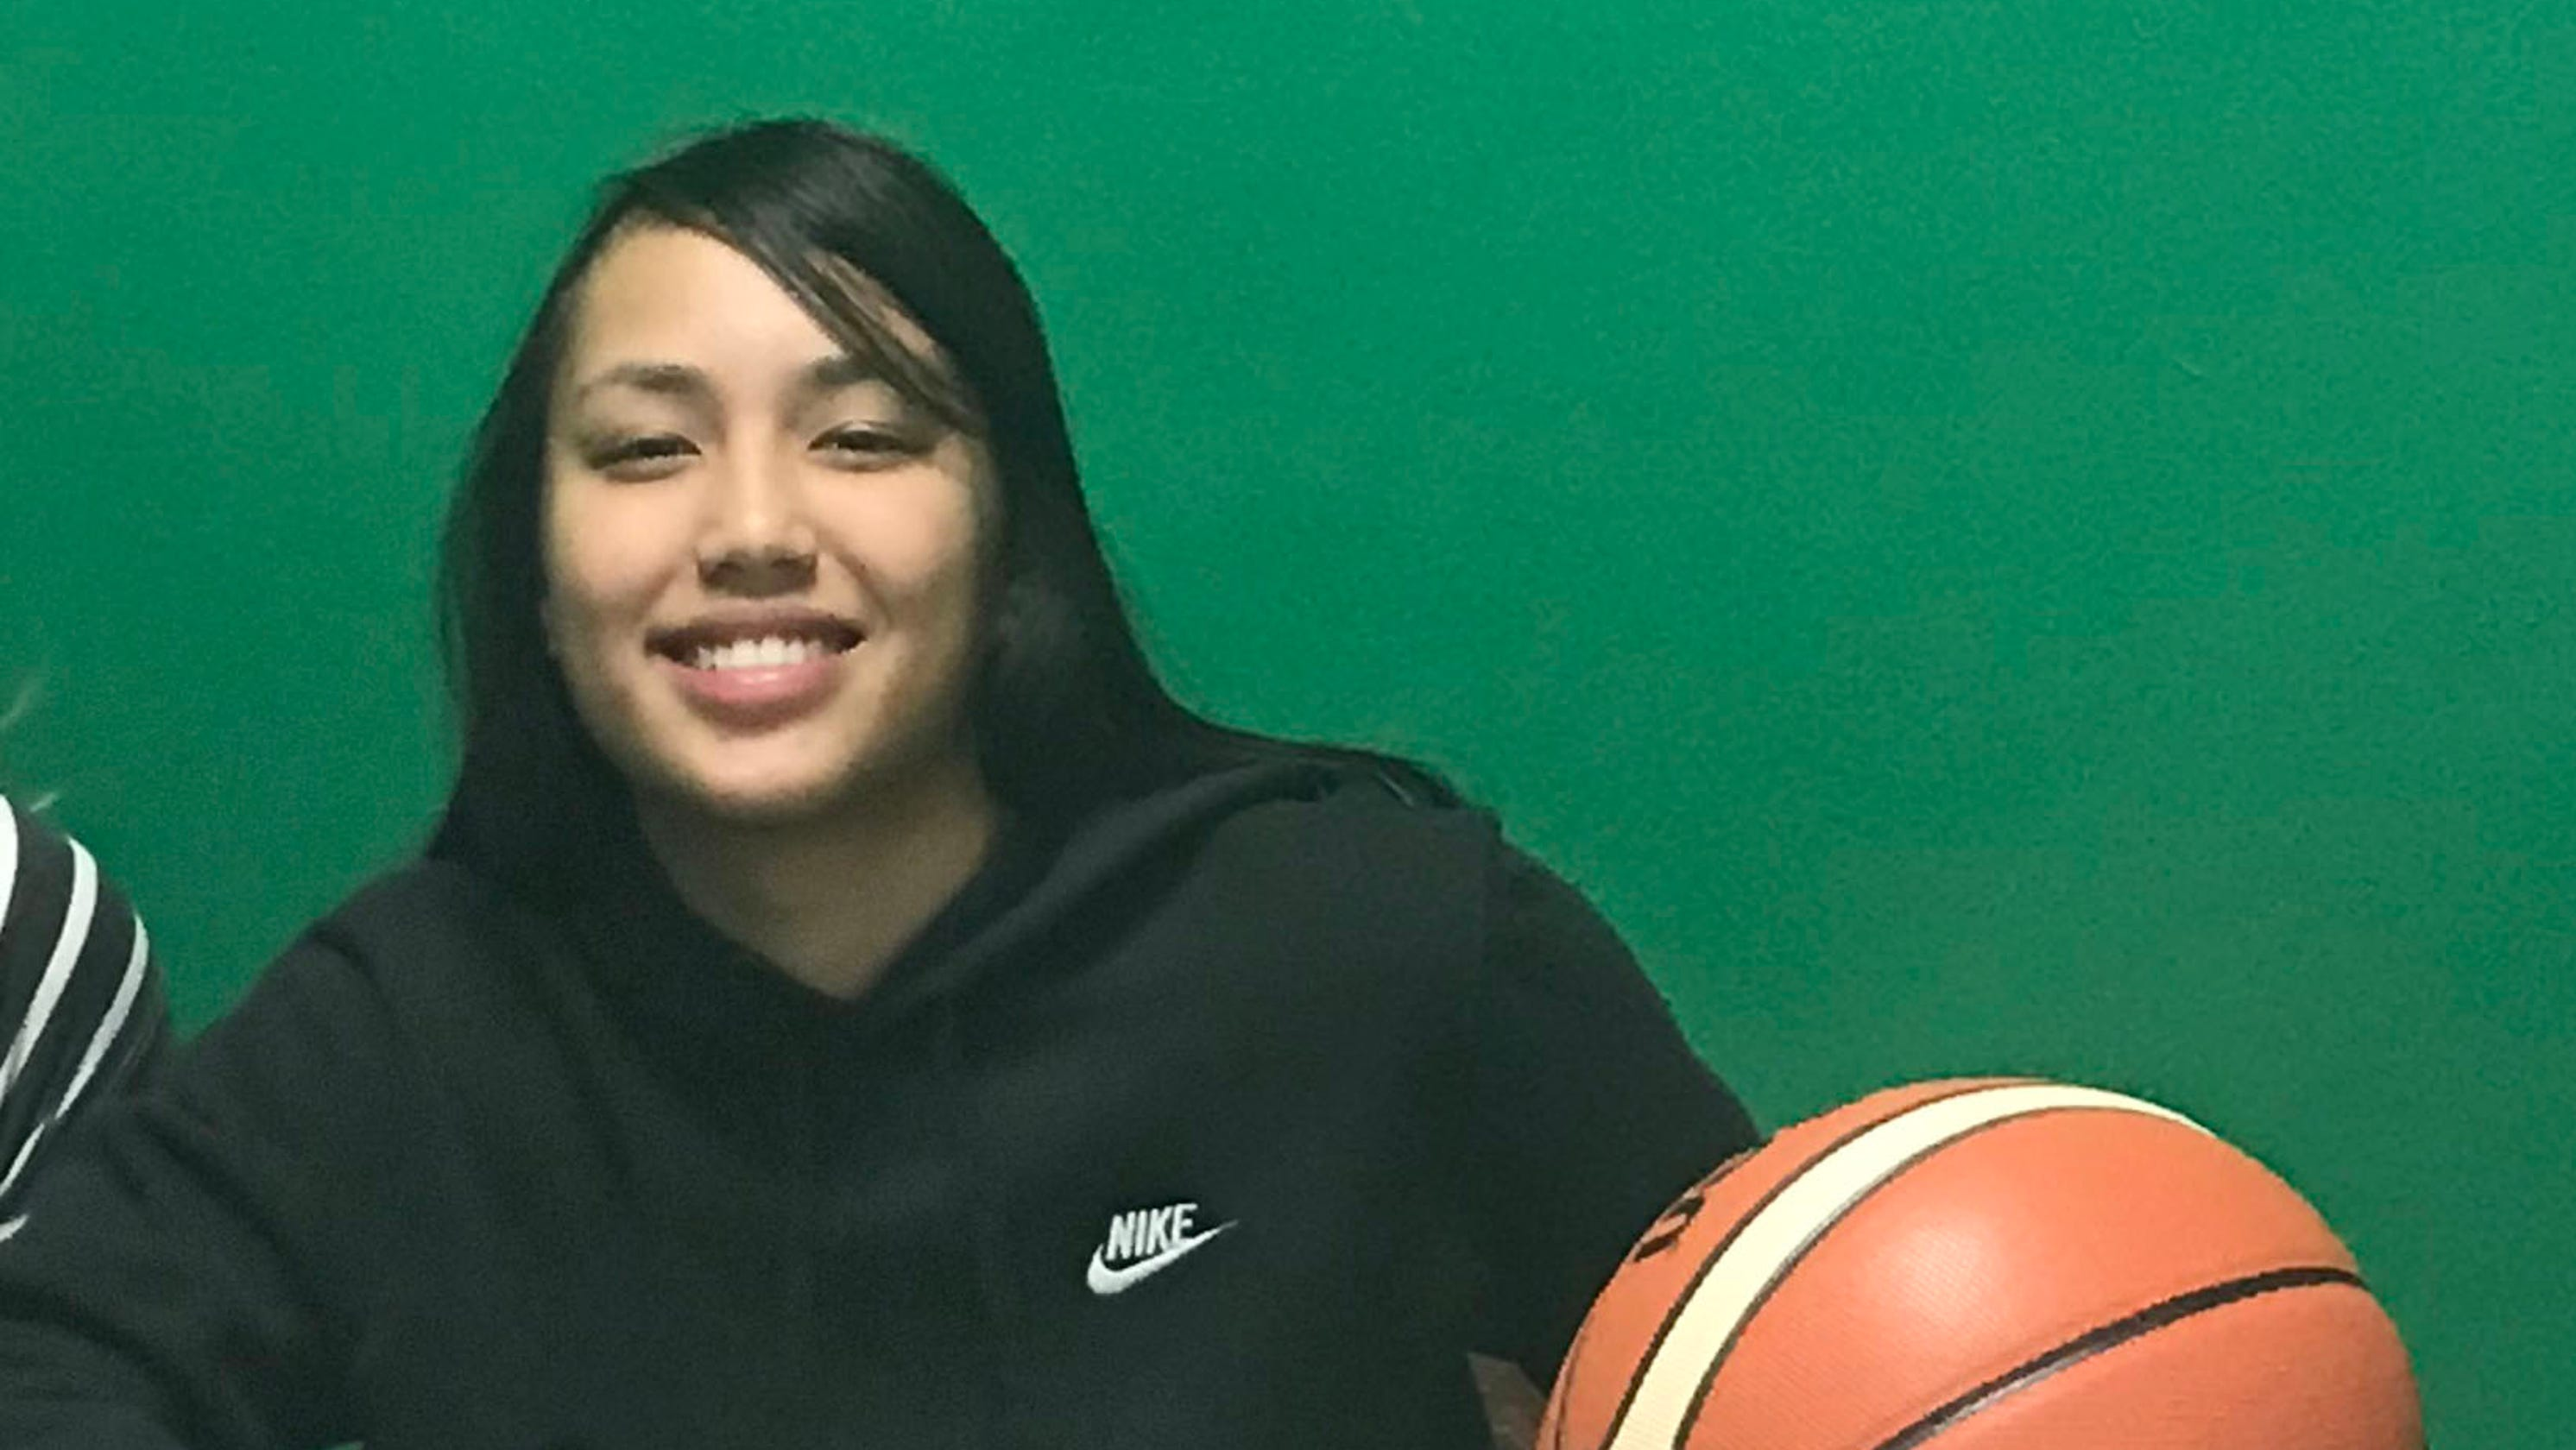 Sports Shorts: UOG signs Niah Siguenza to play women's hoops